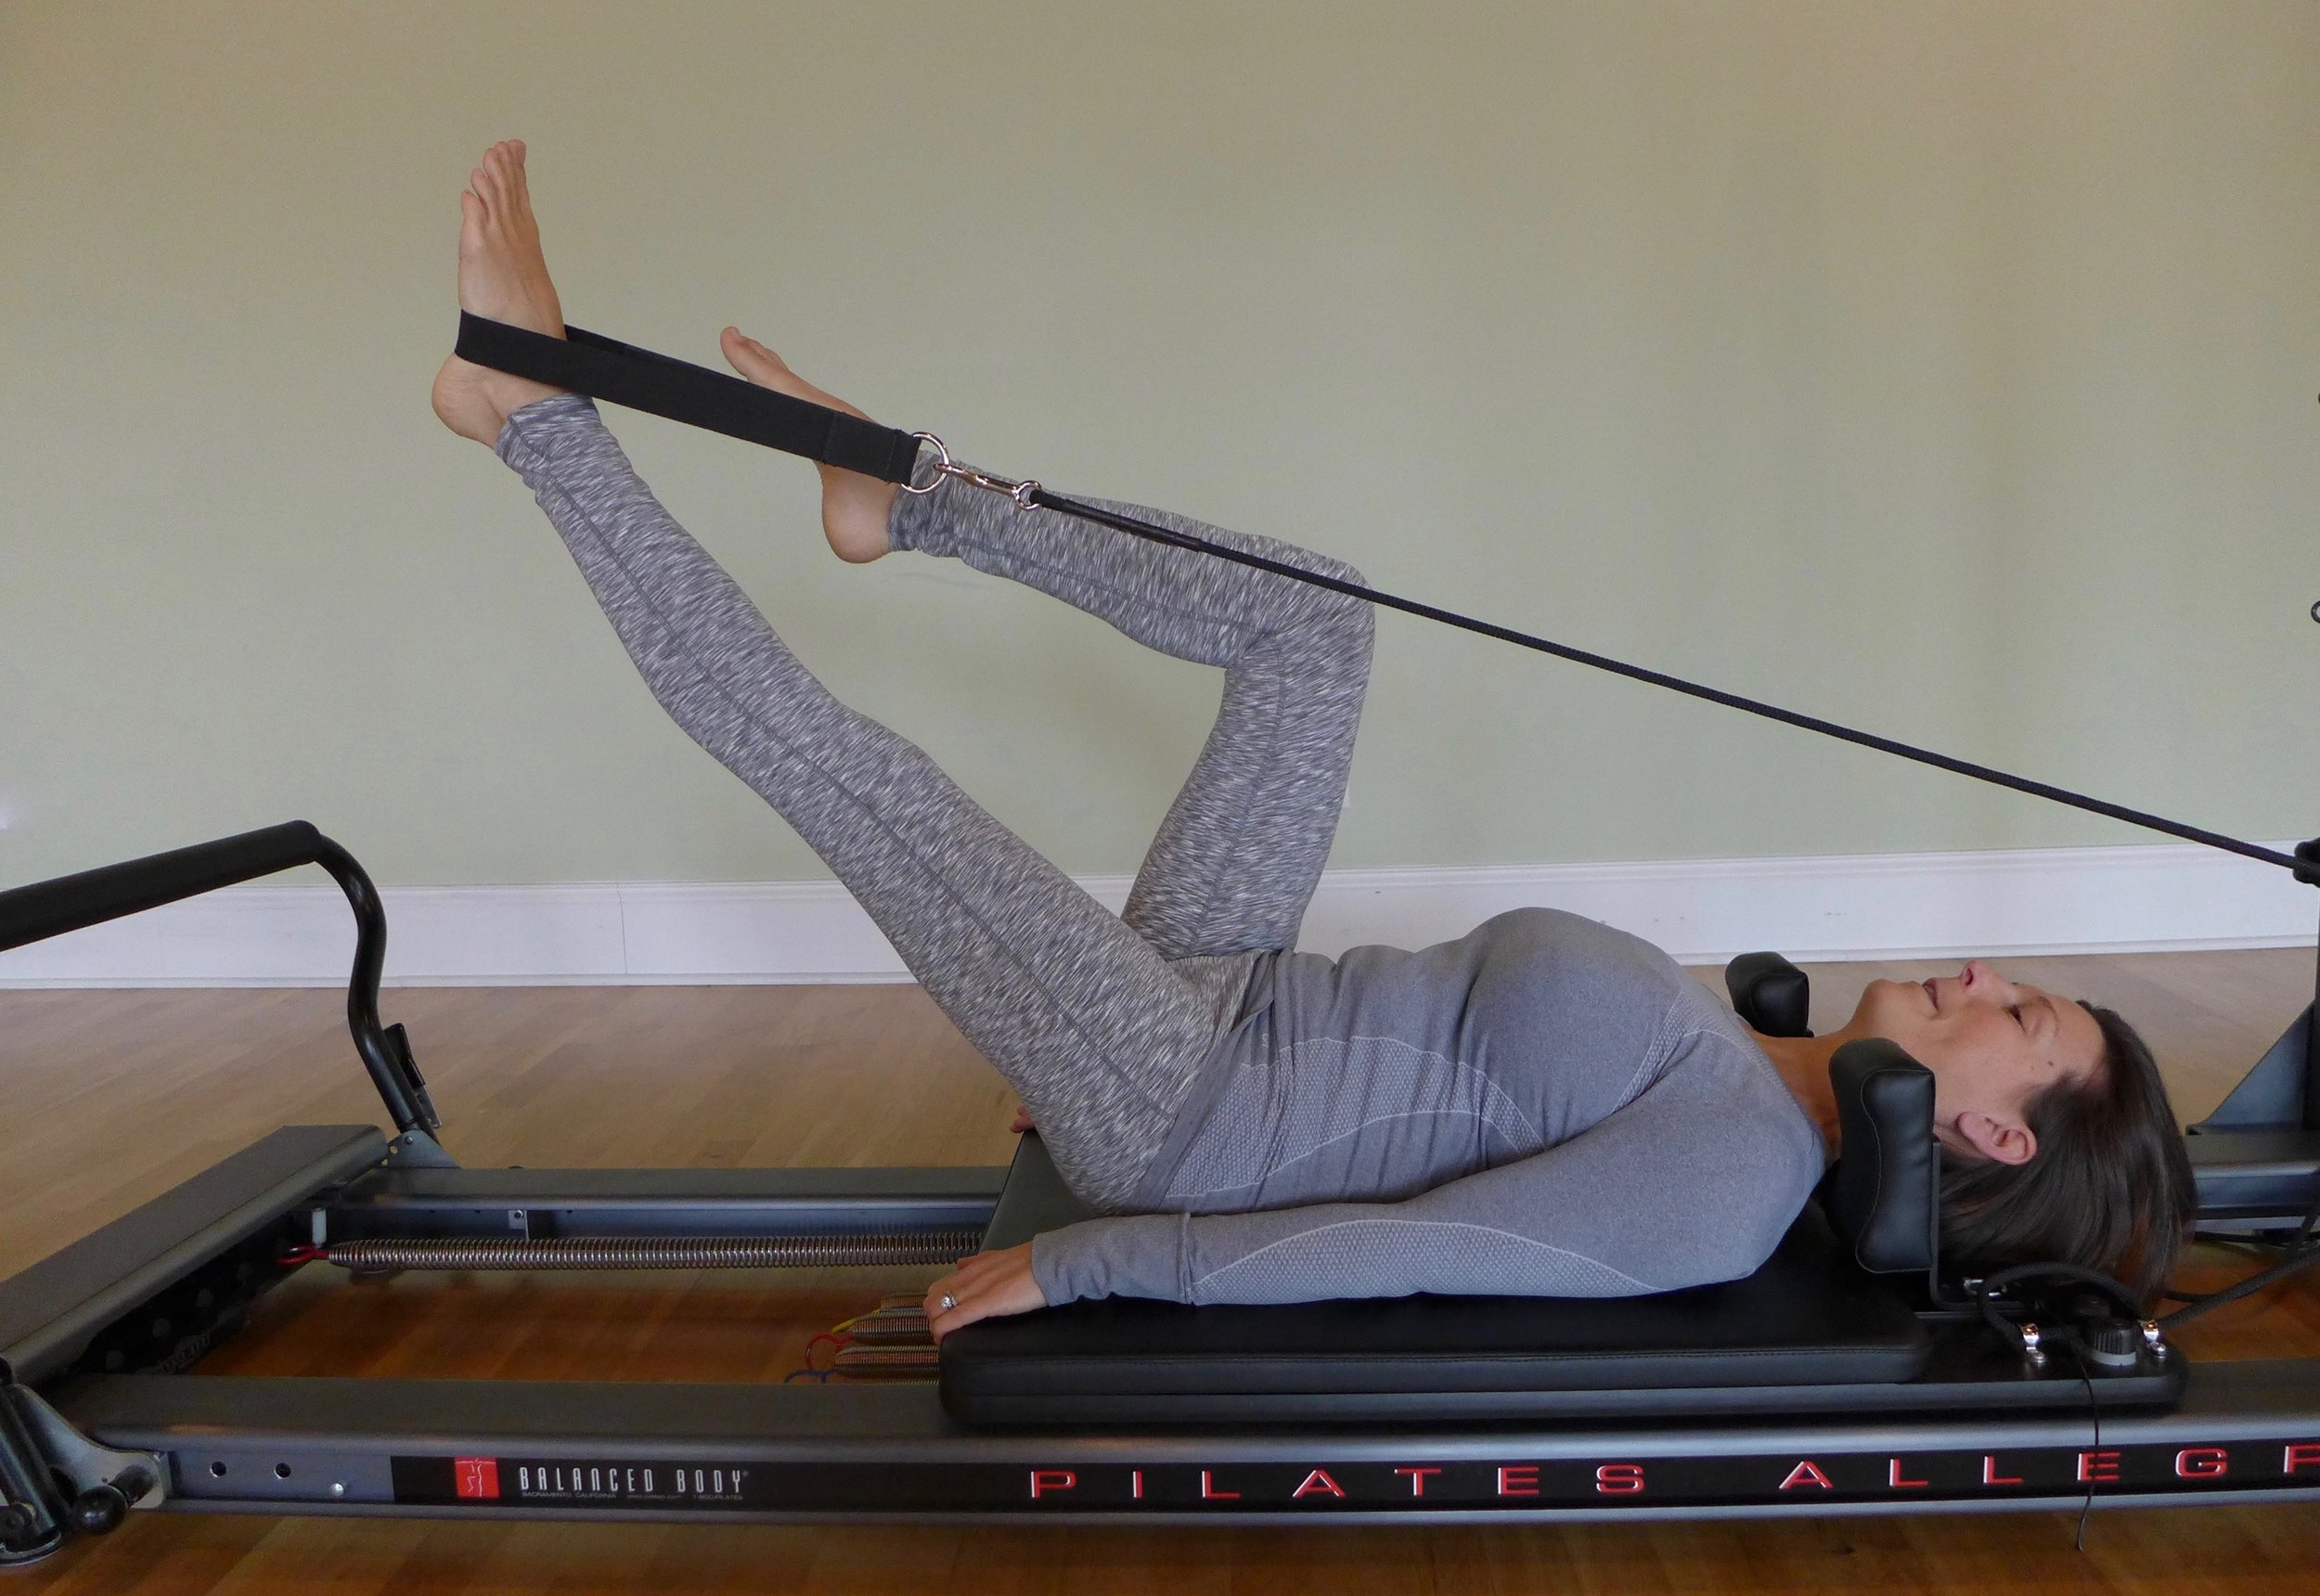 What is Pilates? - An exercise regime based on the principles developed by Joseph Pilates in the mid 1920's. Pilates has been used for decades by athletes and dancers to improve body alignment and build long lean muscles.At Pilates Central we use spring driven machines to provide challenging, low impact strengthening exercise. Emphasis is placed on the body's core musculature with a focus on proper form, safety and alignment .